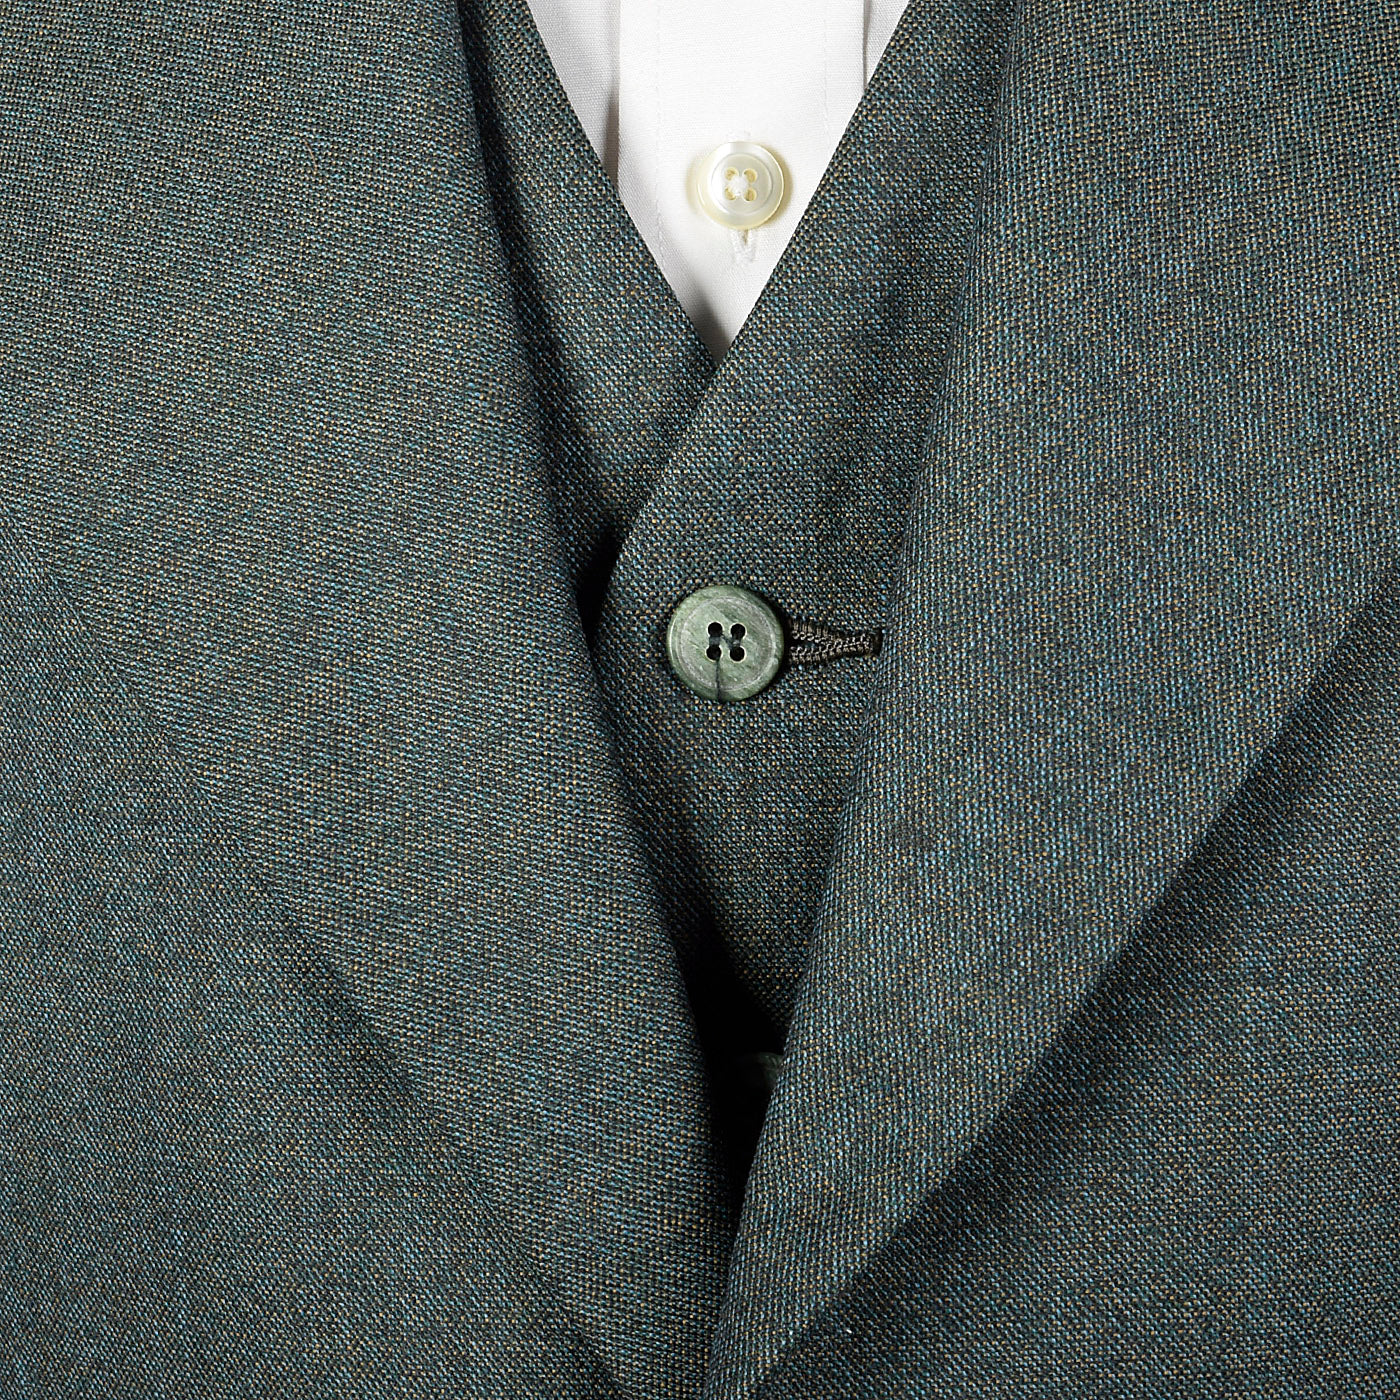 1970s Mens Three Piece Suit in Green